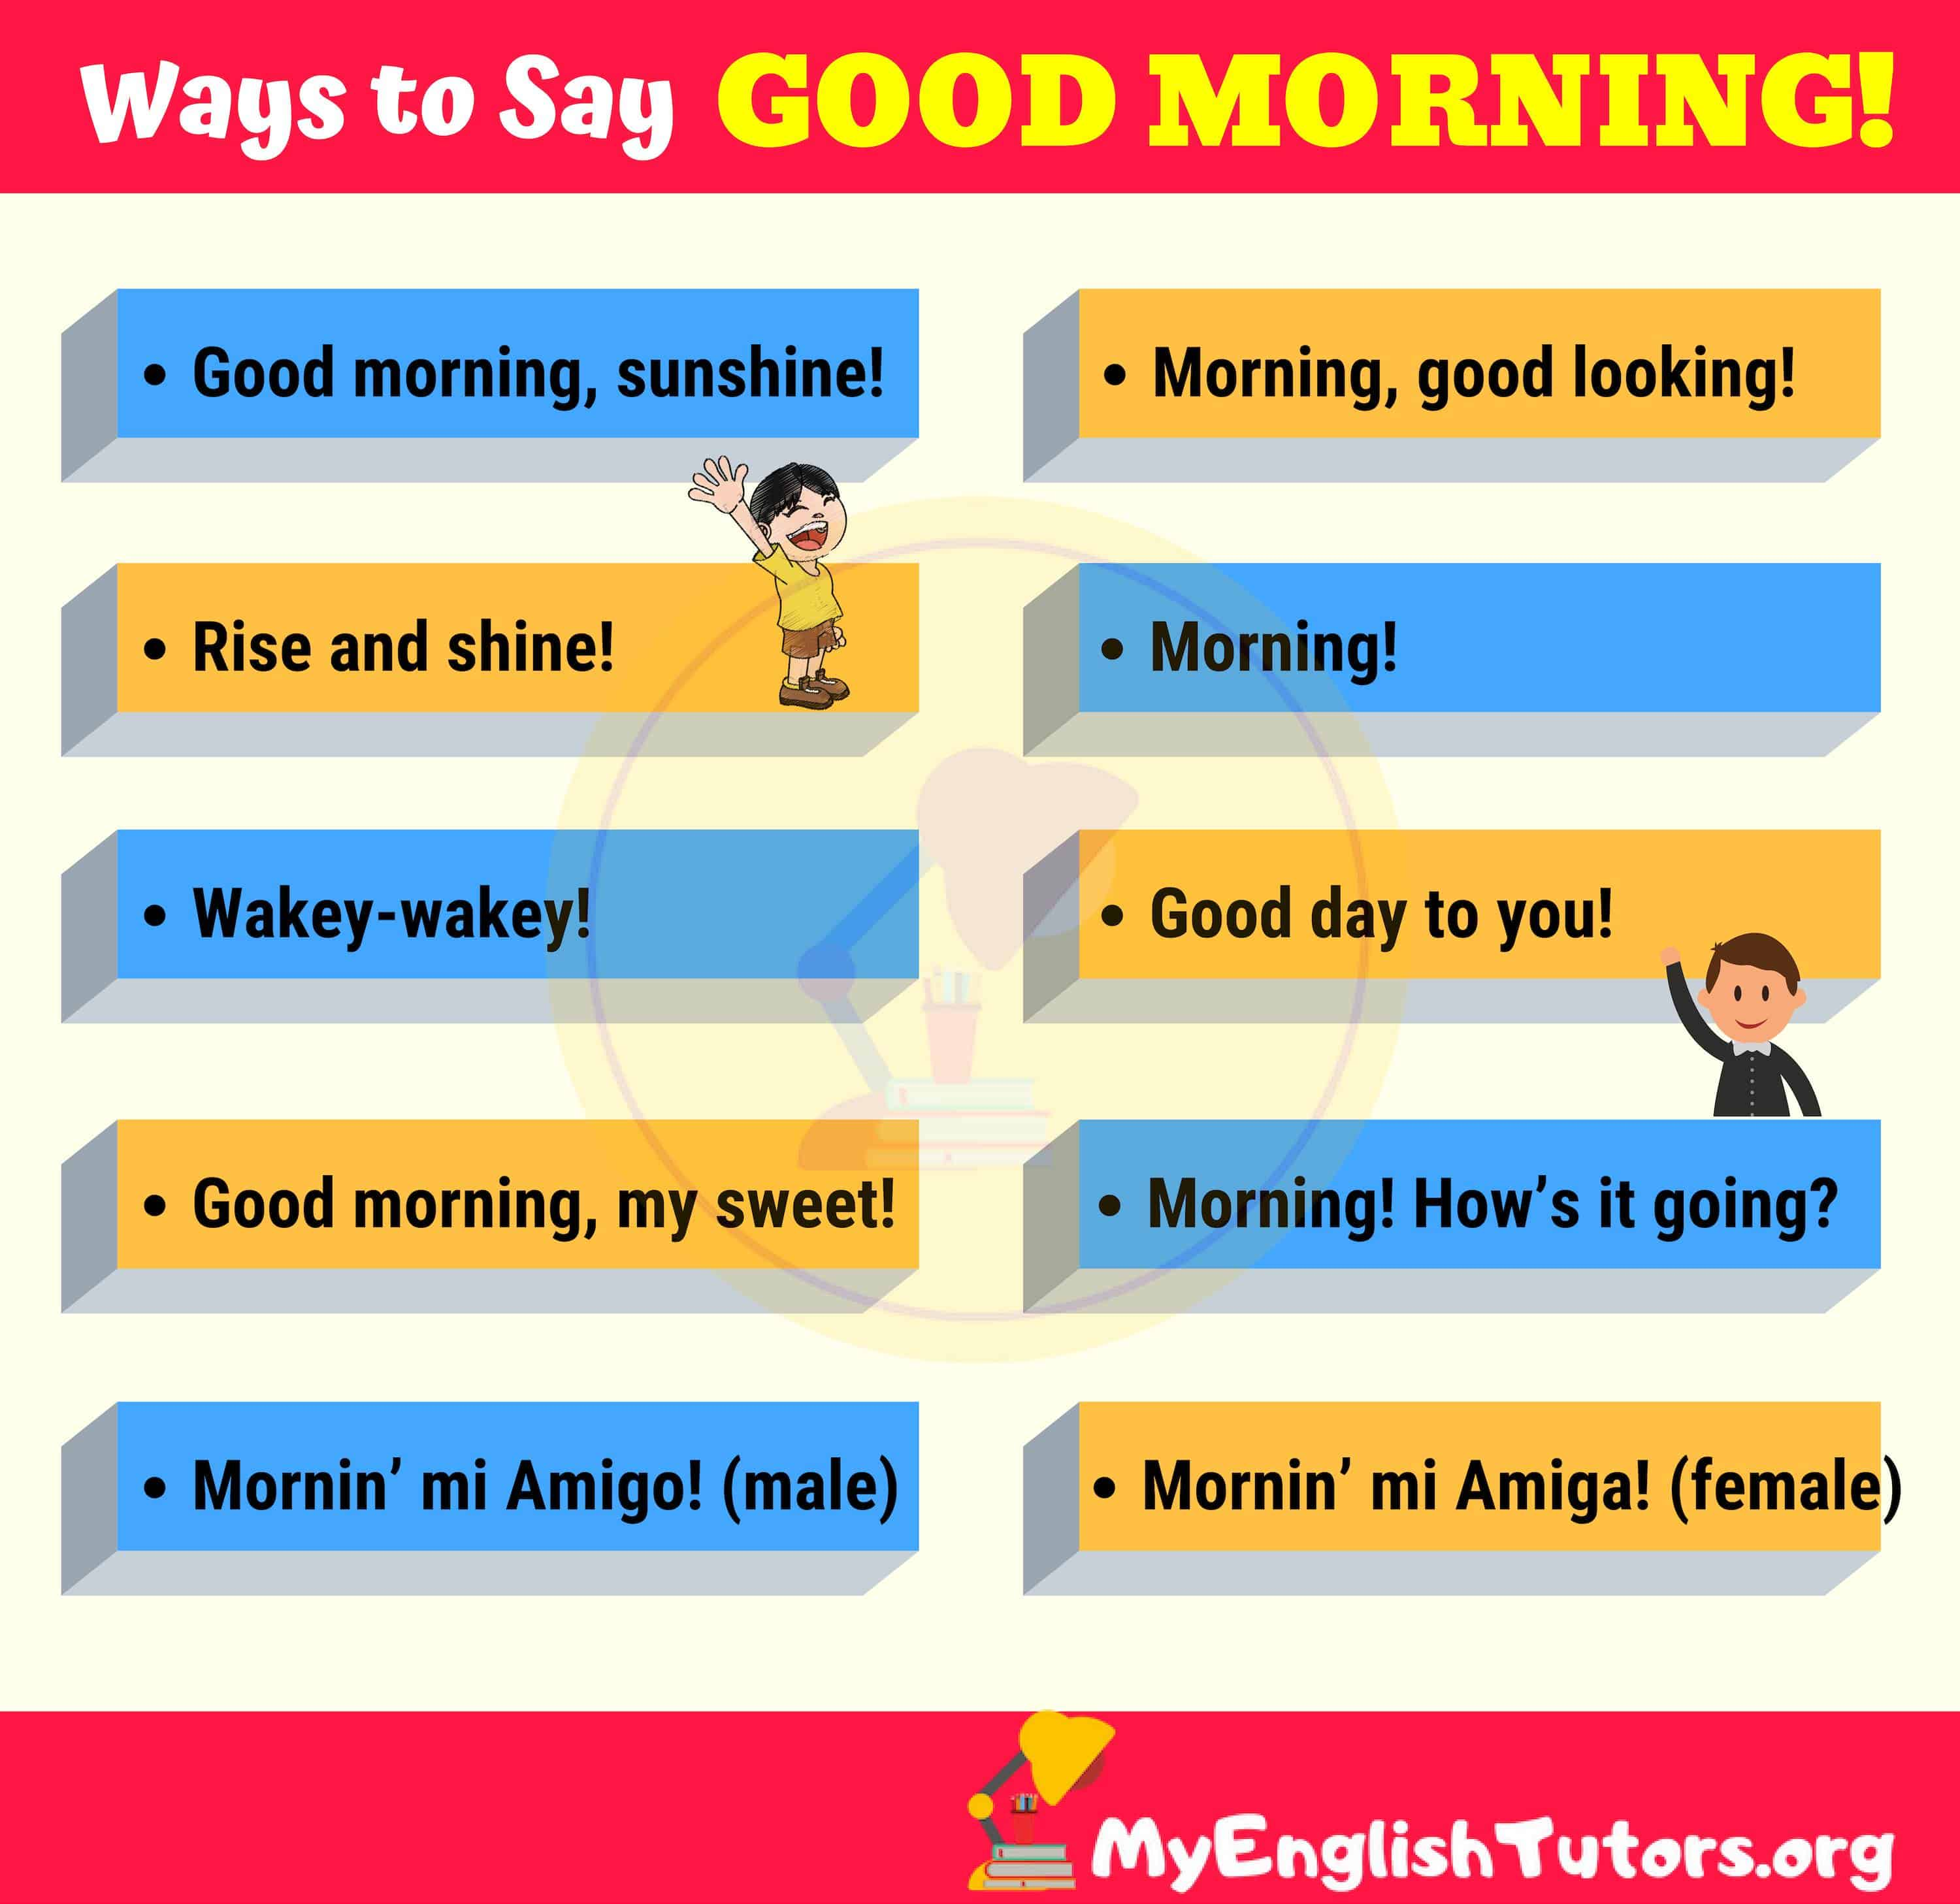 Creative Ways to Say GOOD MORNING!